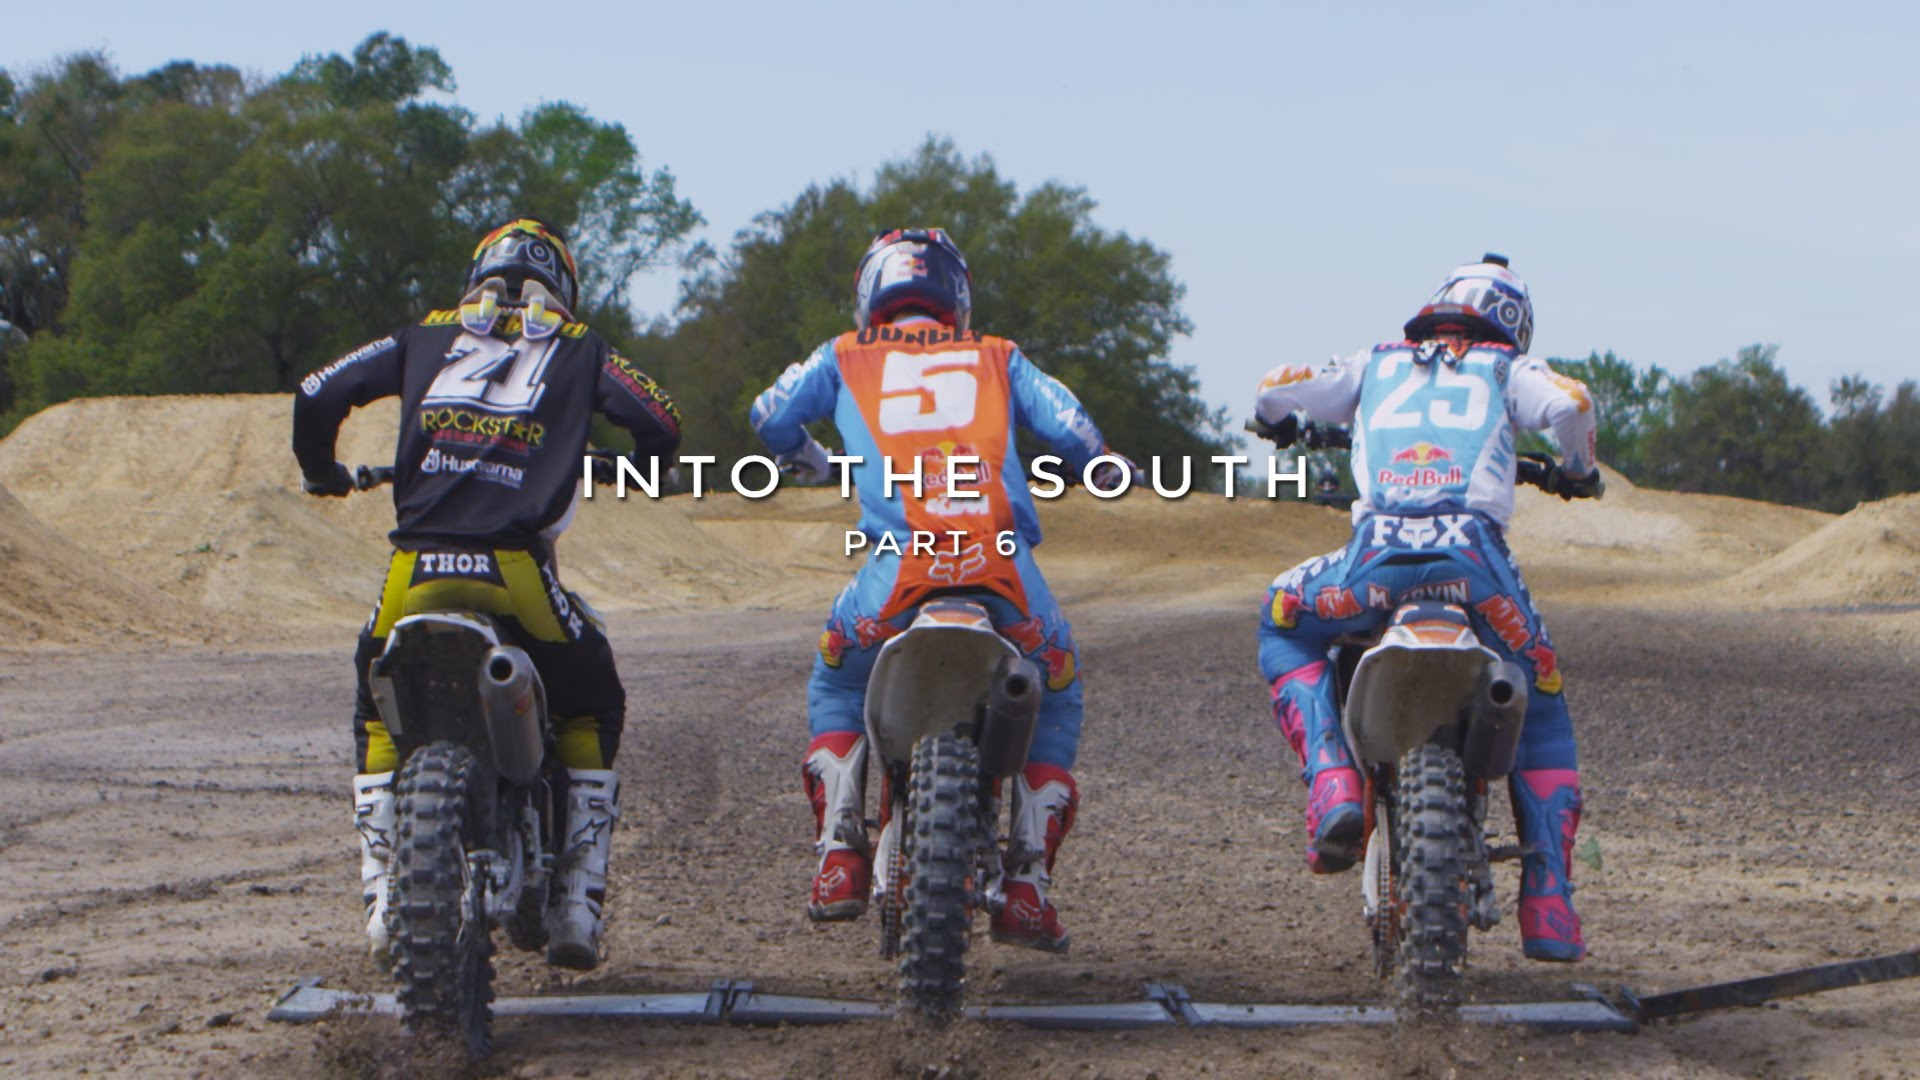 Into the South Part 6 - Dungey, Musquin, Anderson